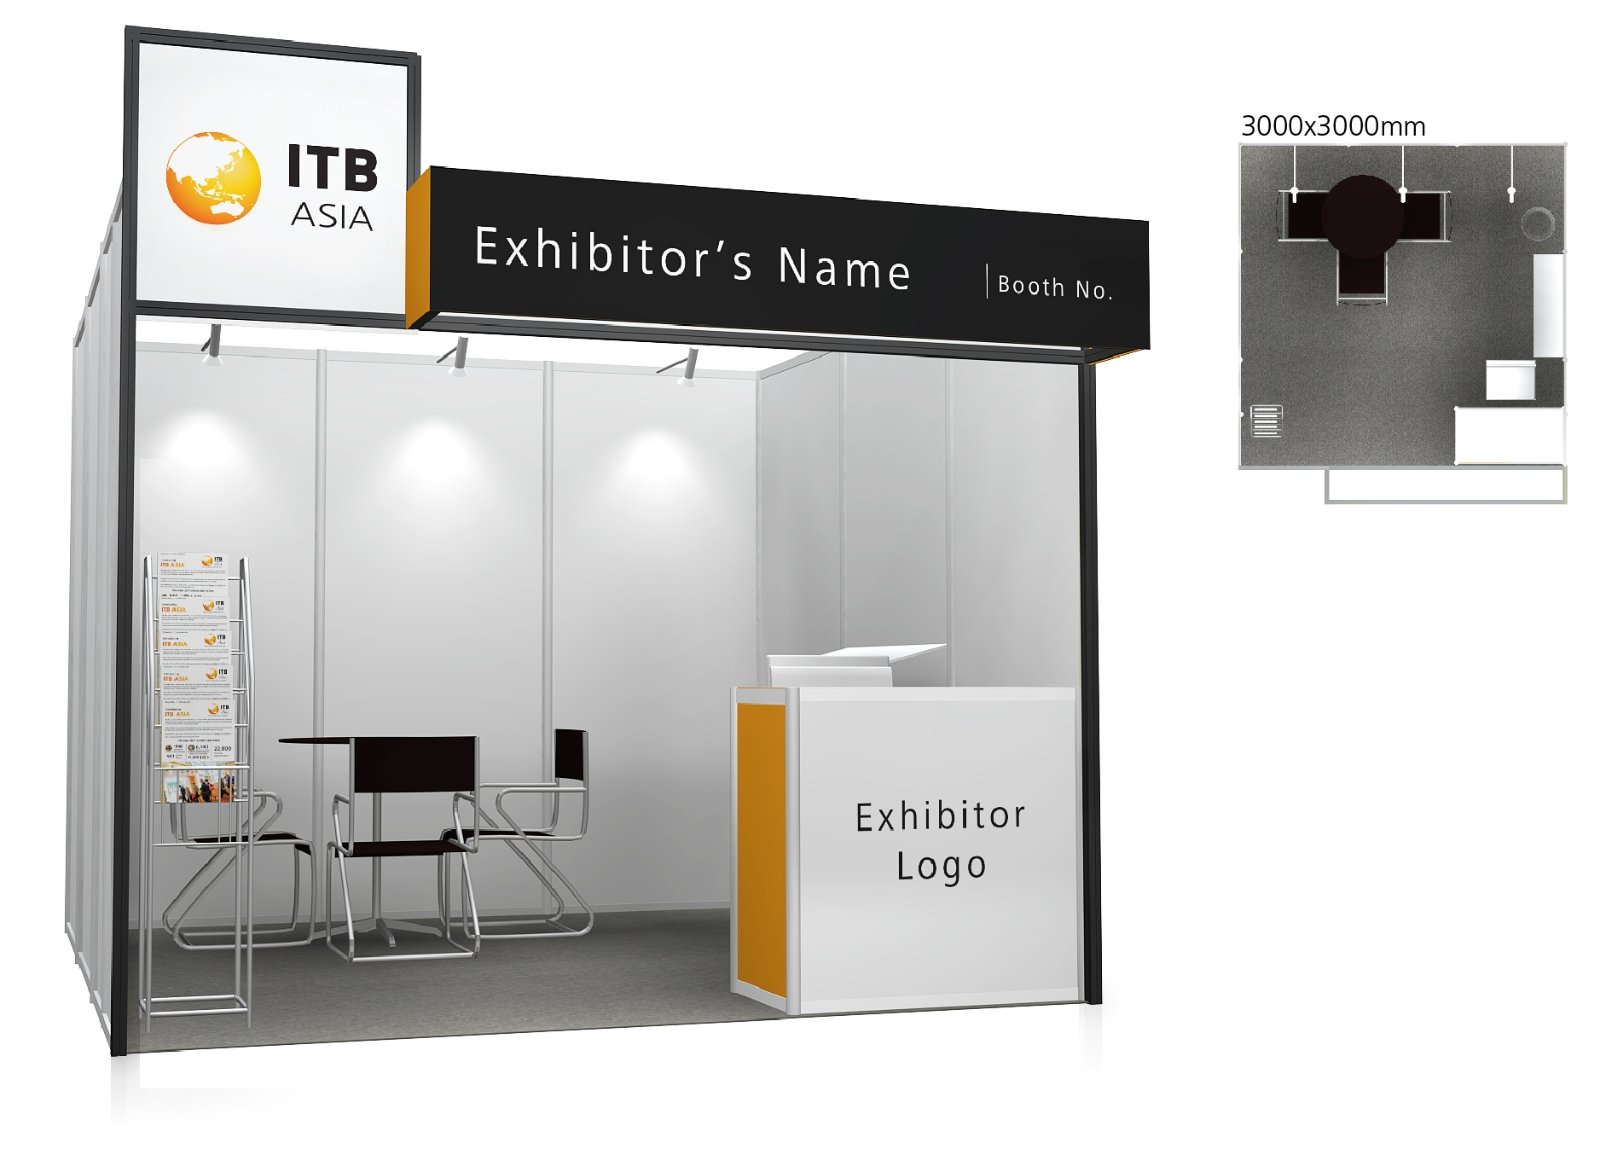 Exhibition Booth Standard Shell Scheme : Booth options